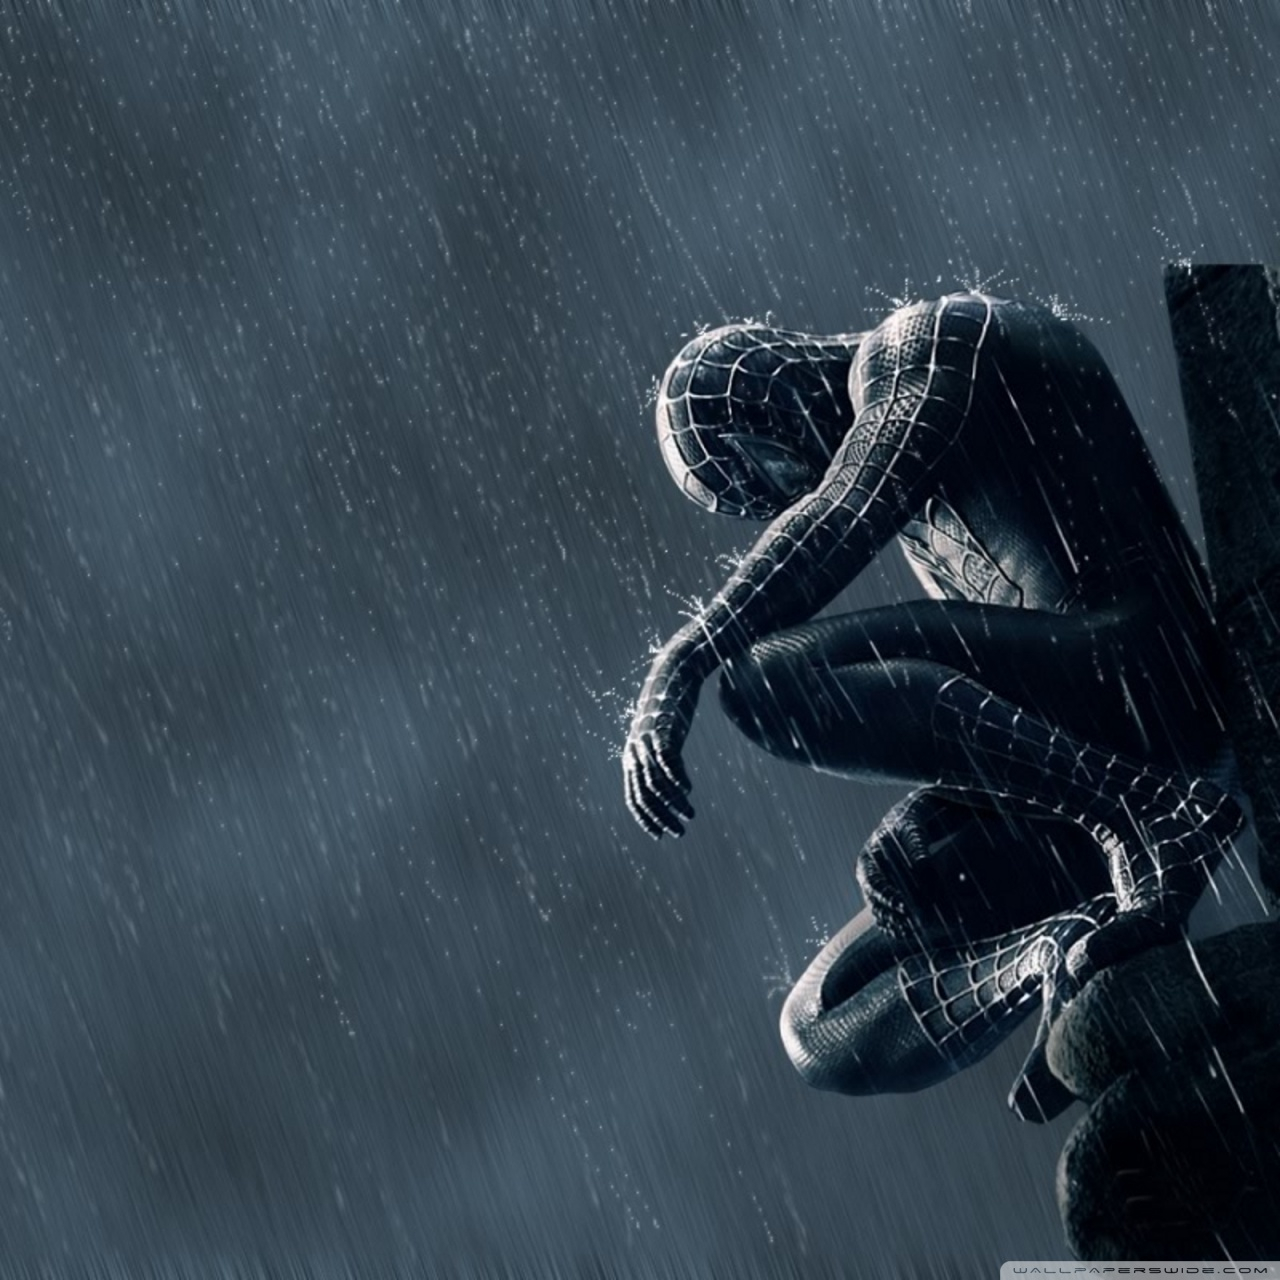 spider man in the rain wallpapers